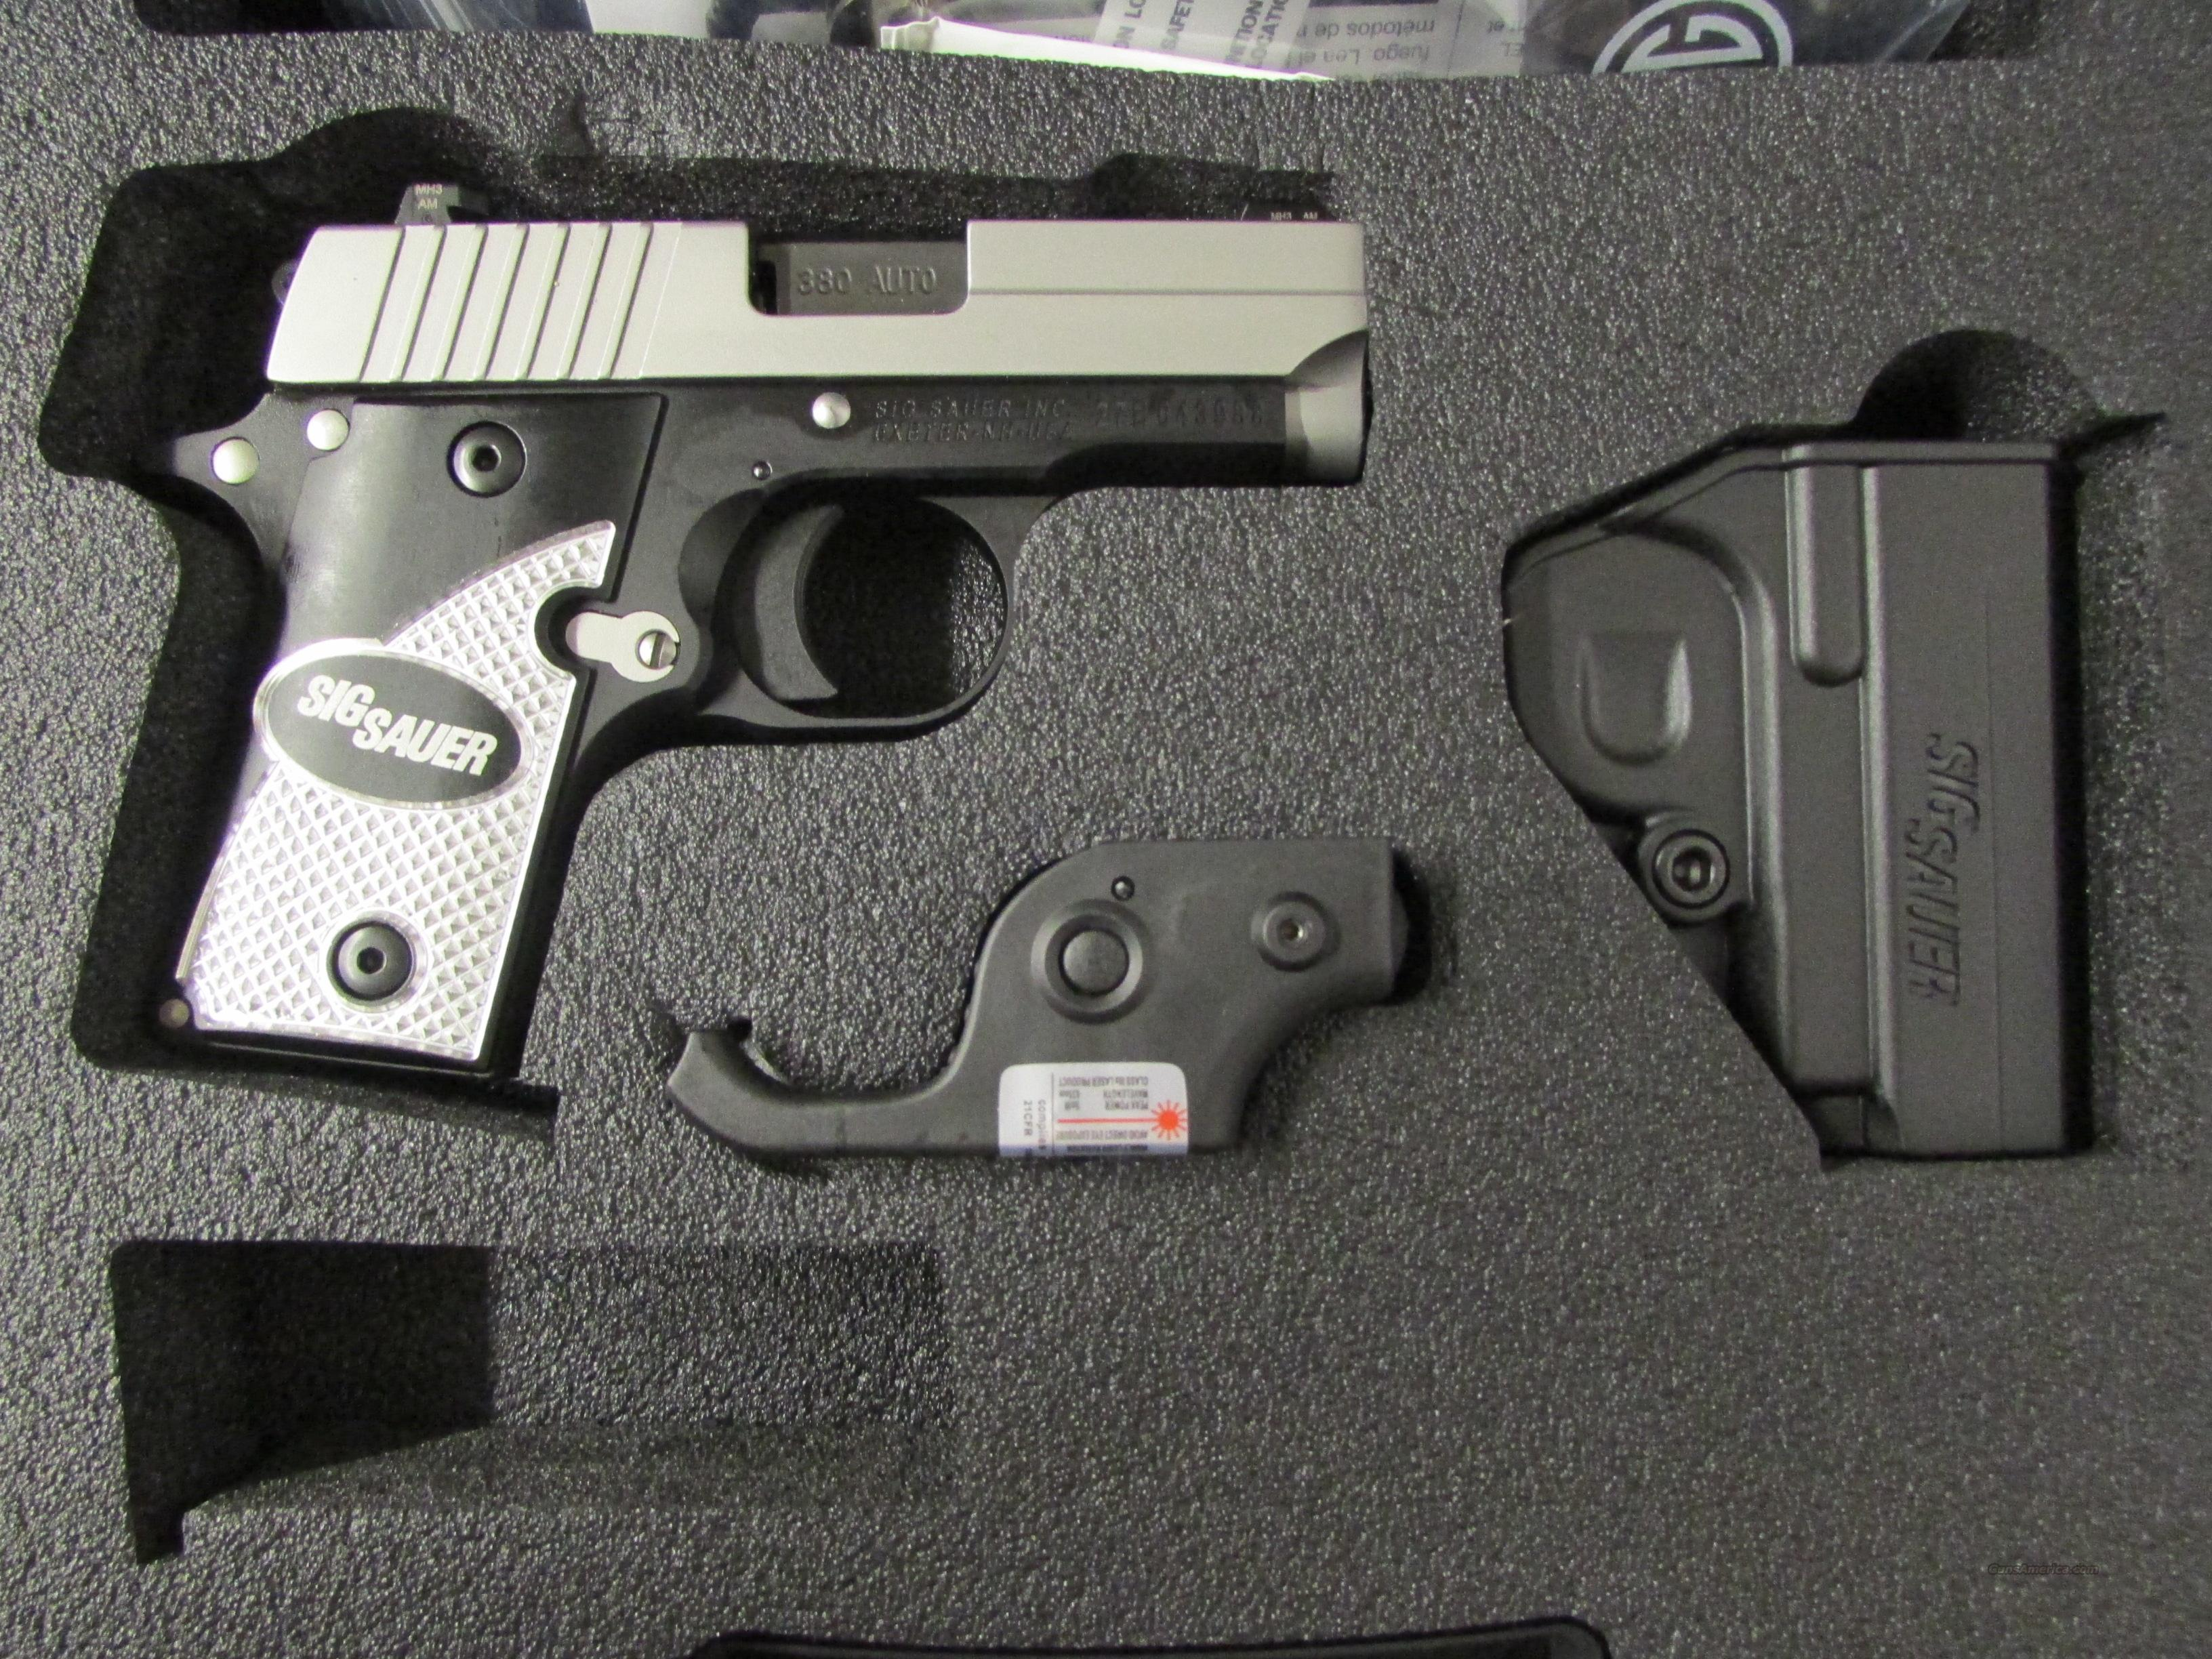 Sig Sauer P238 Tactical Laser .380 ACP with Night Sights  Guns > Pistols > Sig - Sauer/Sigarms Pistols > P238